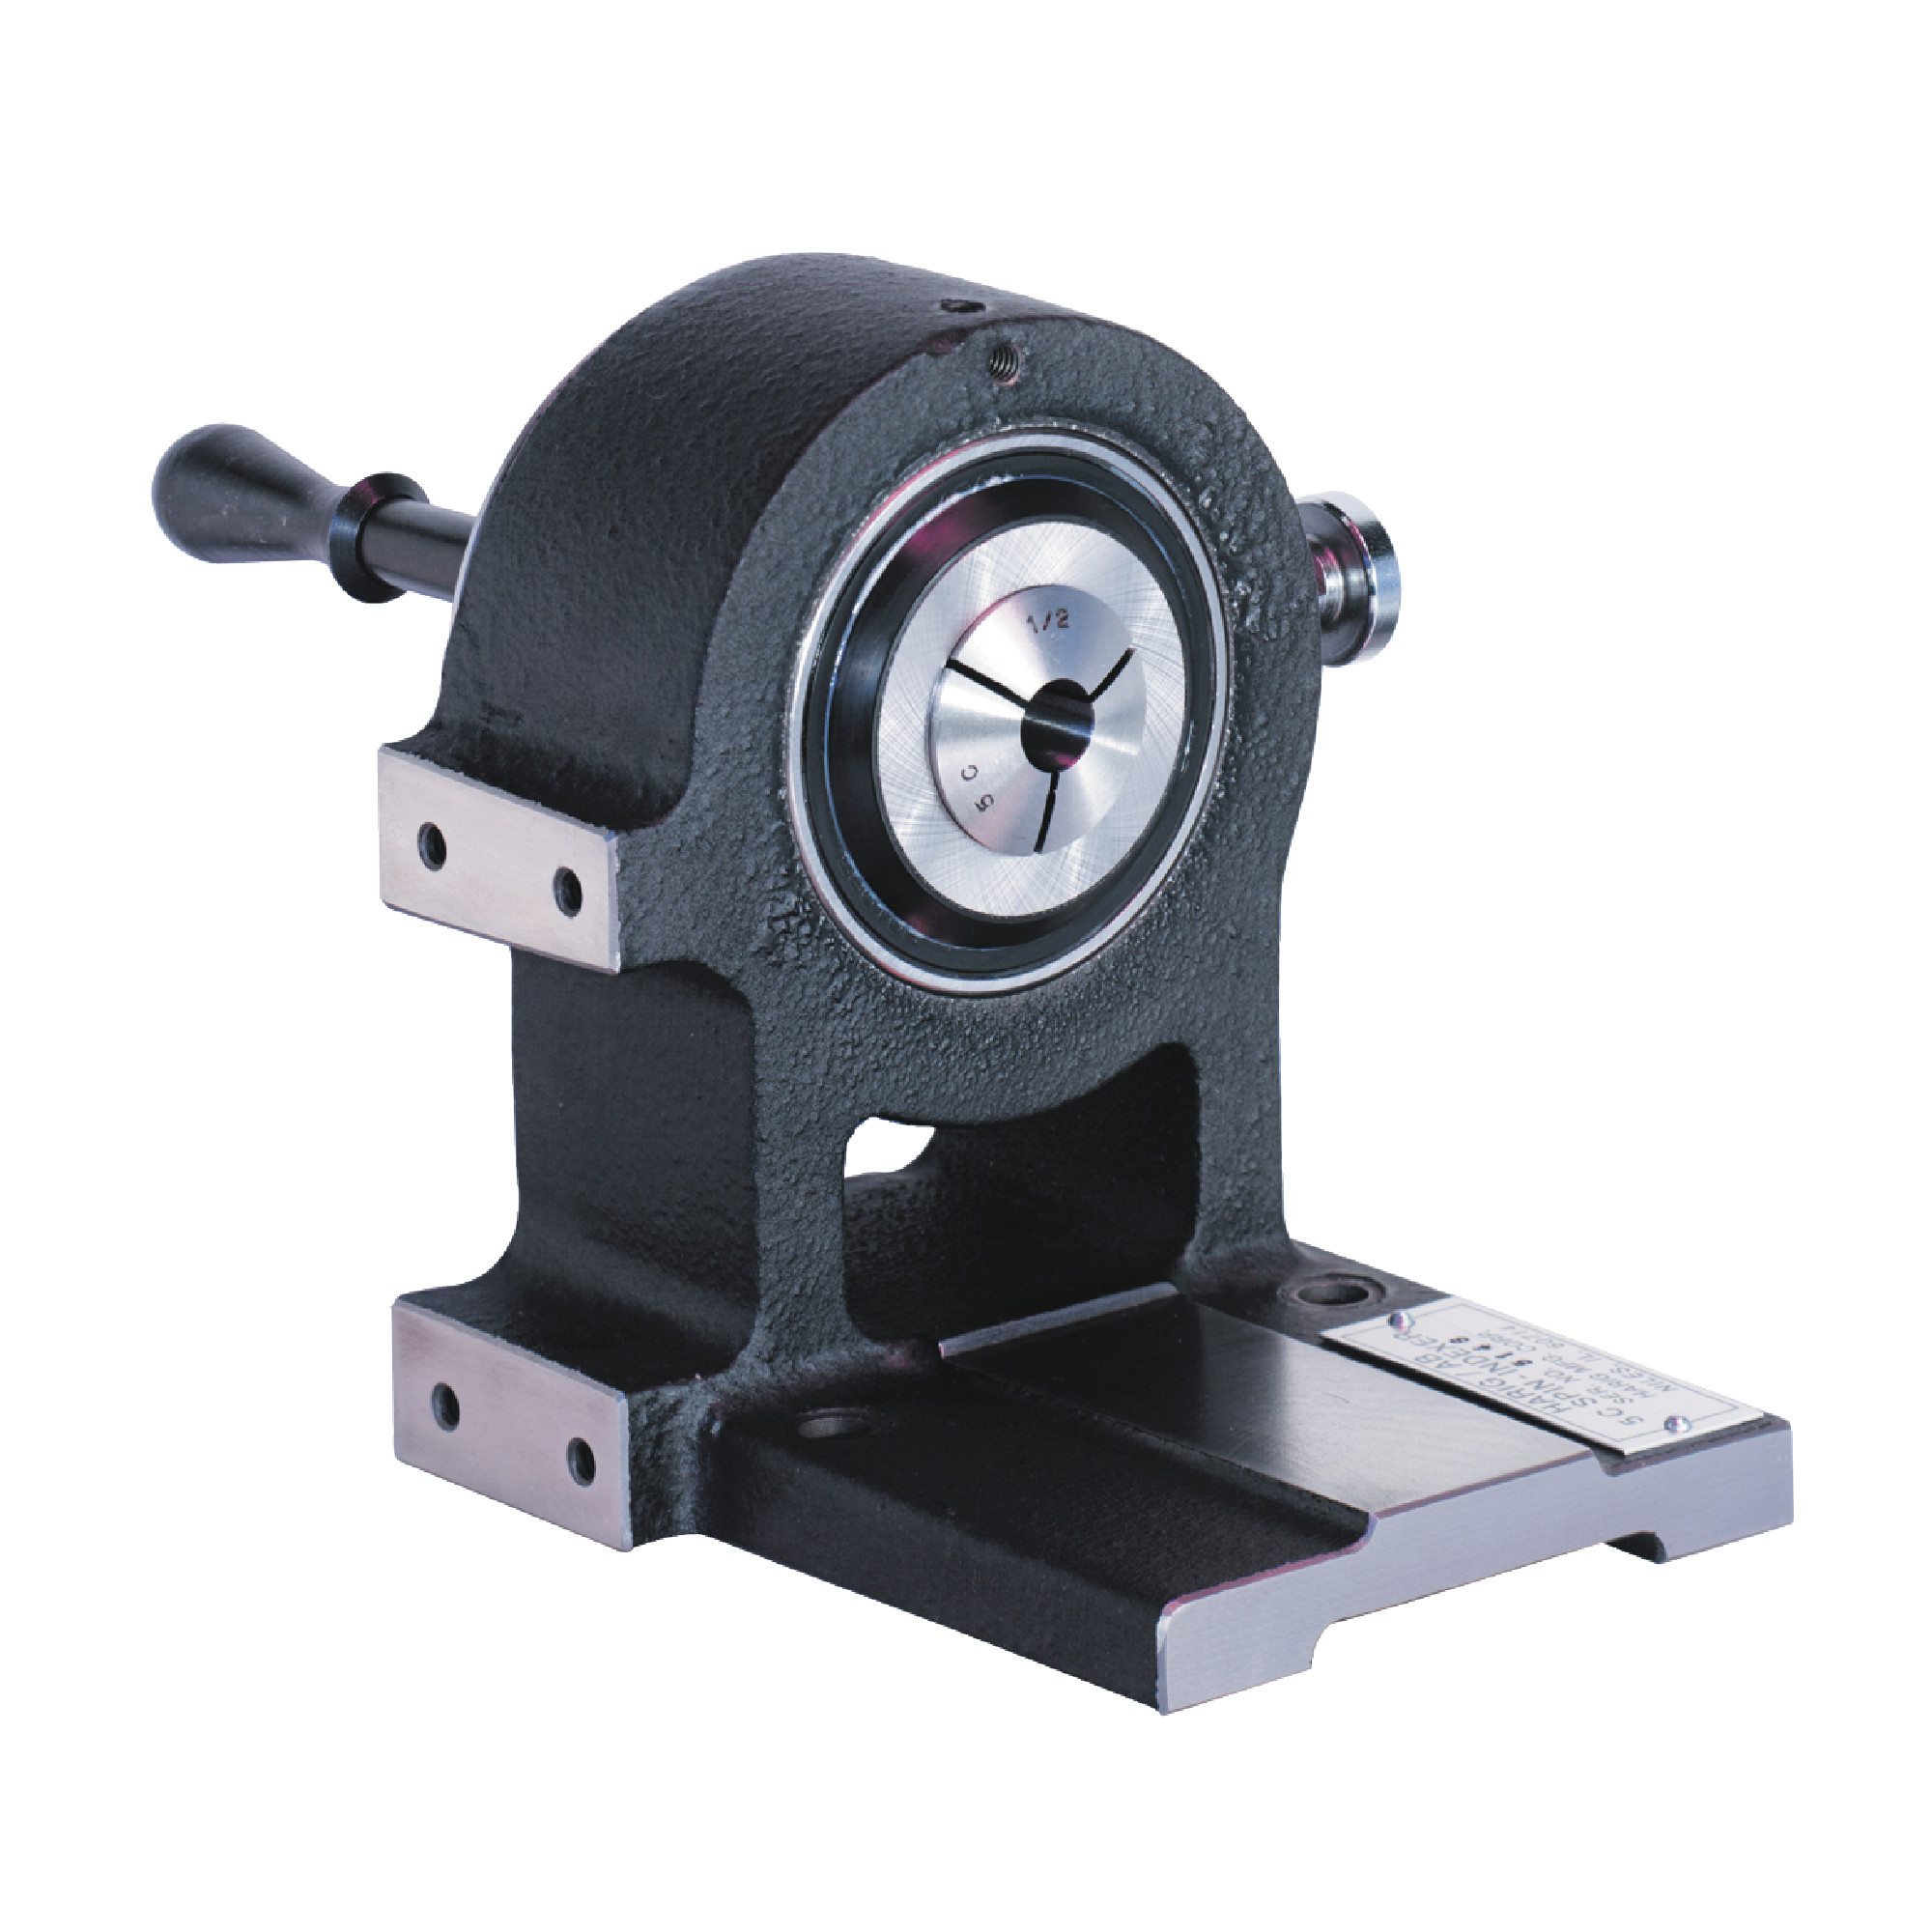 Manual 5C Collet Spin-Indexer